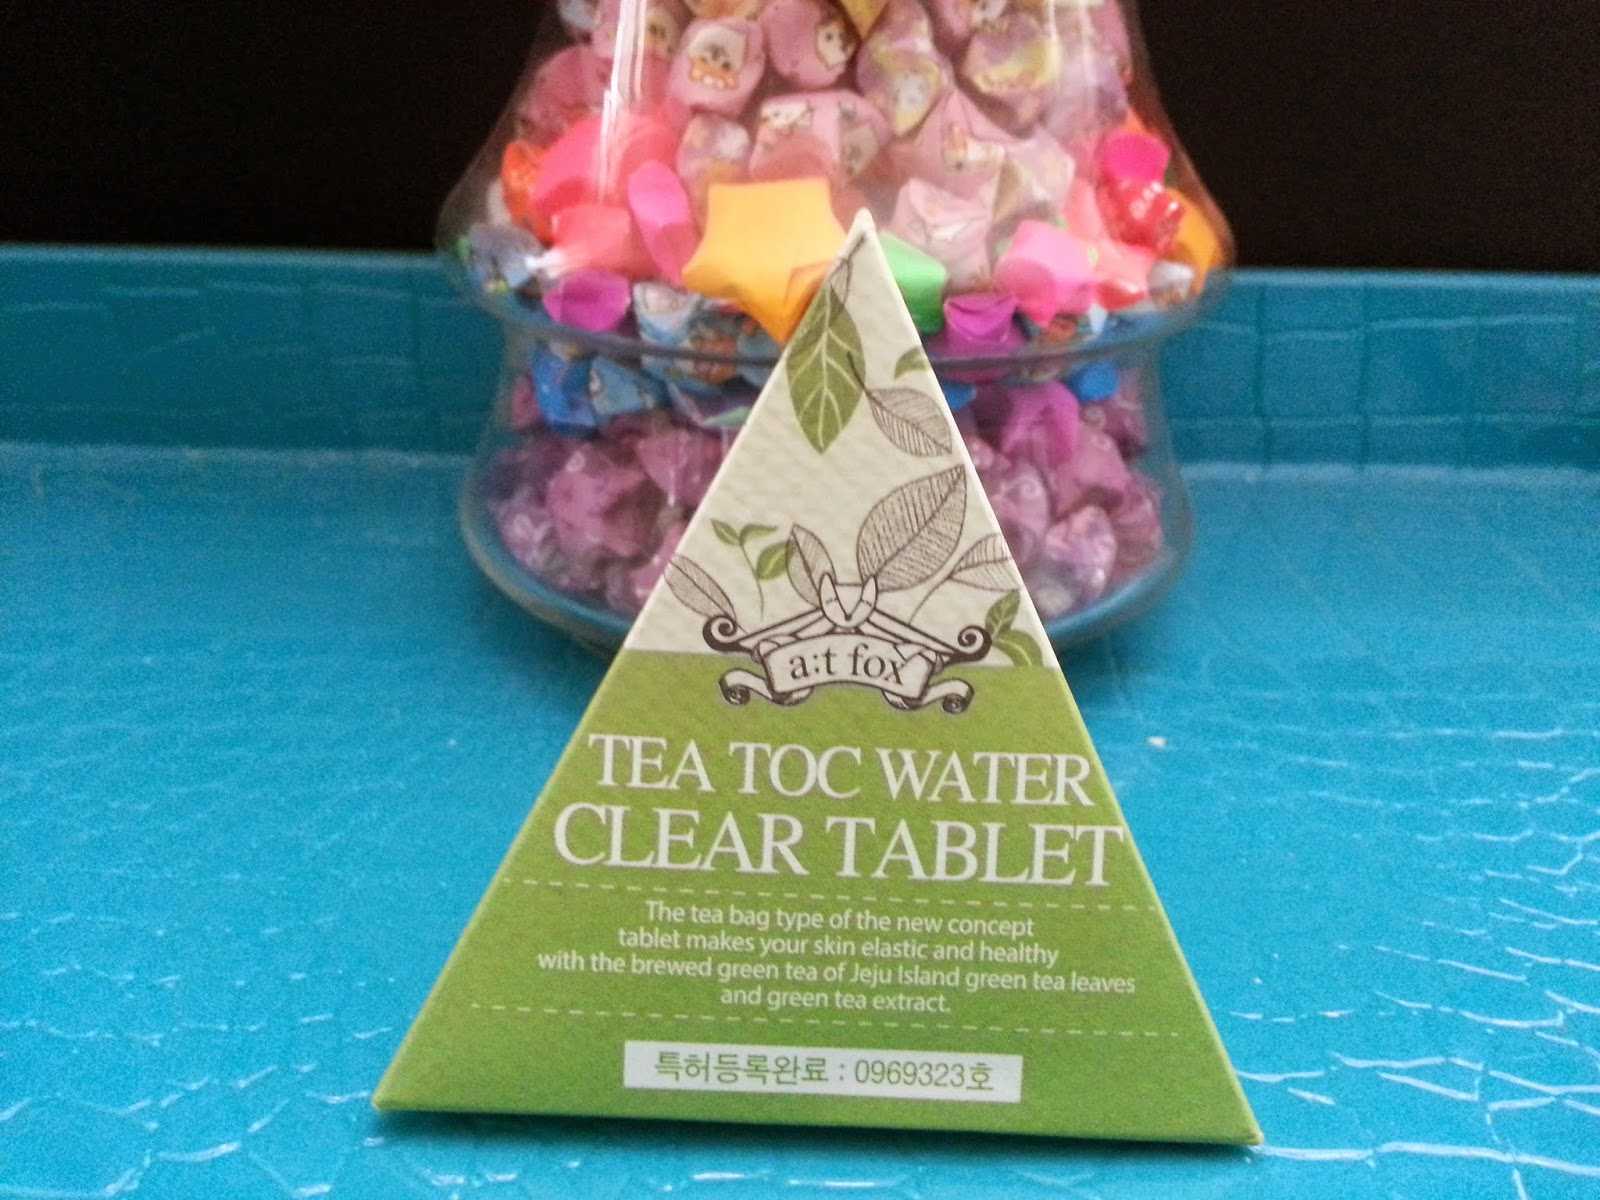 A;T Fox Tea Toc Water Clear Tablet